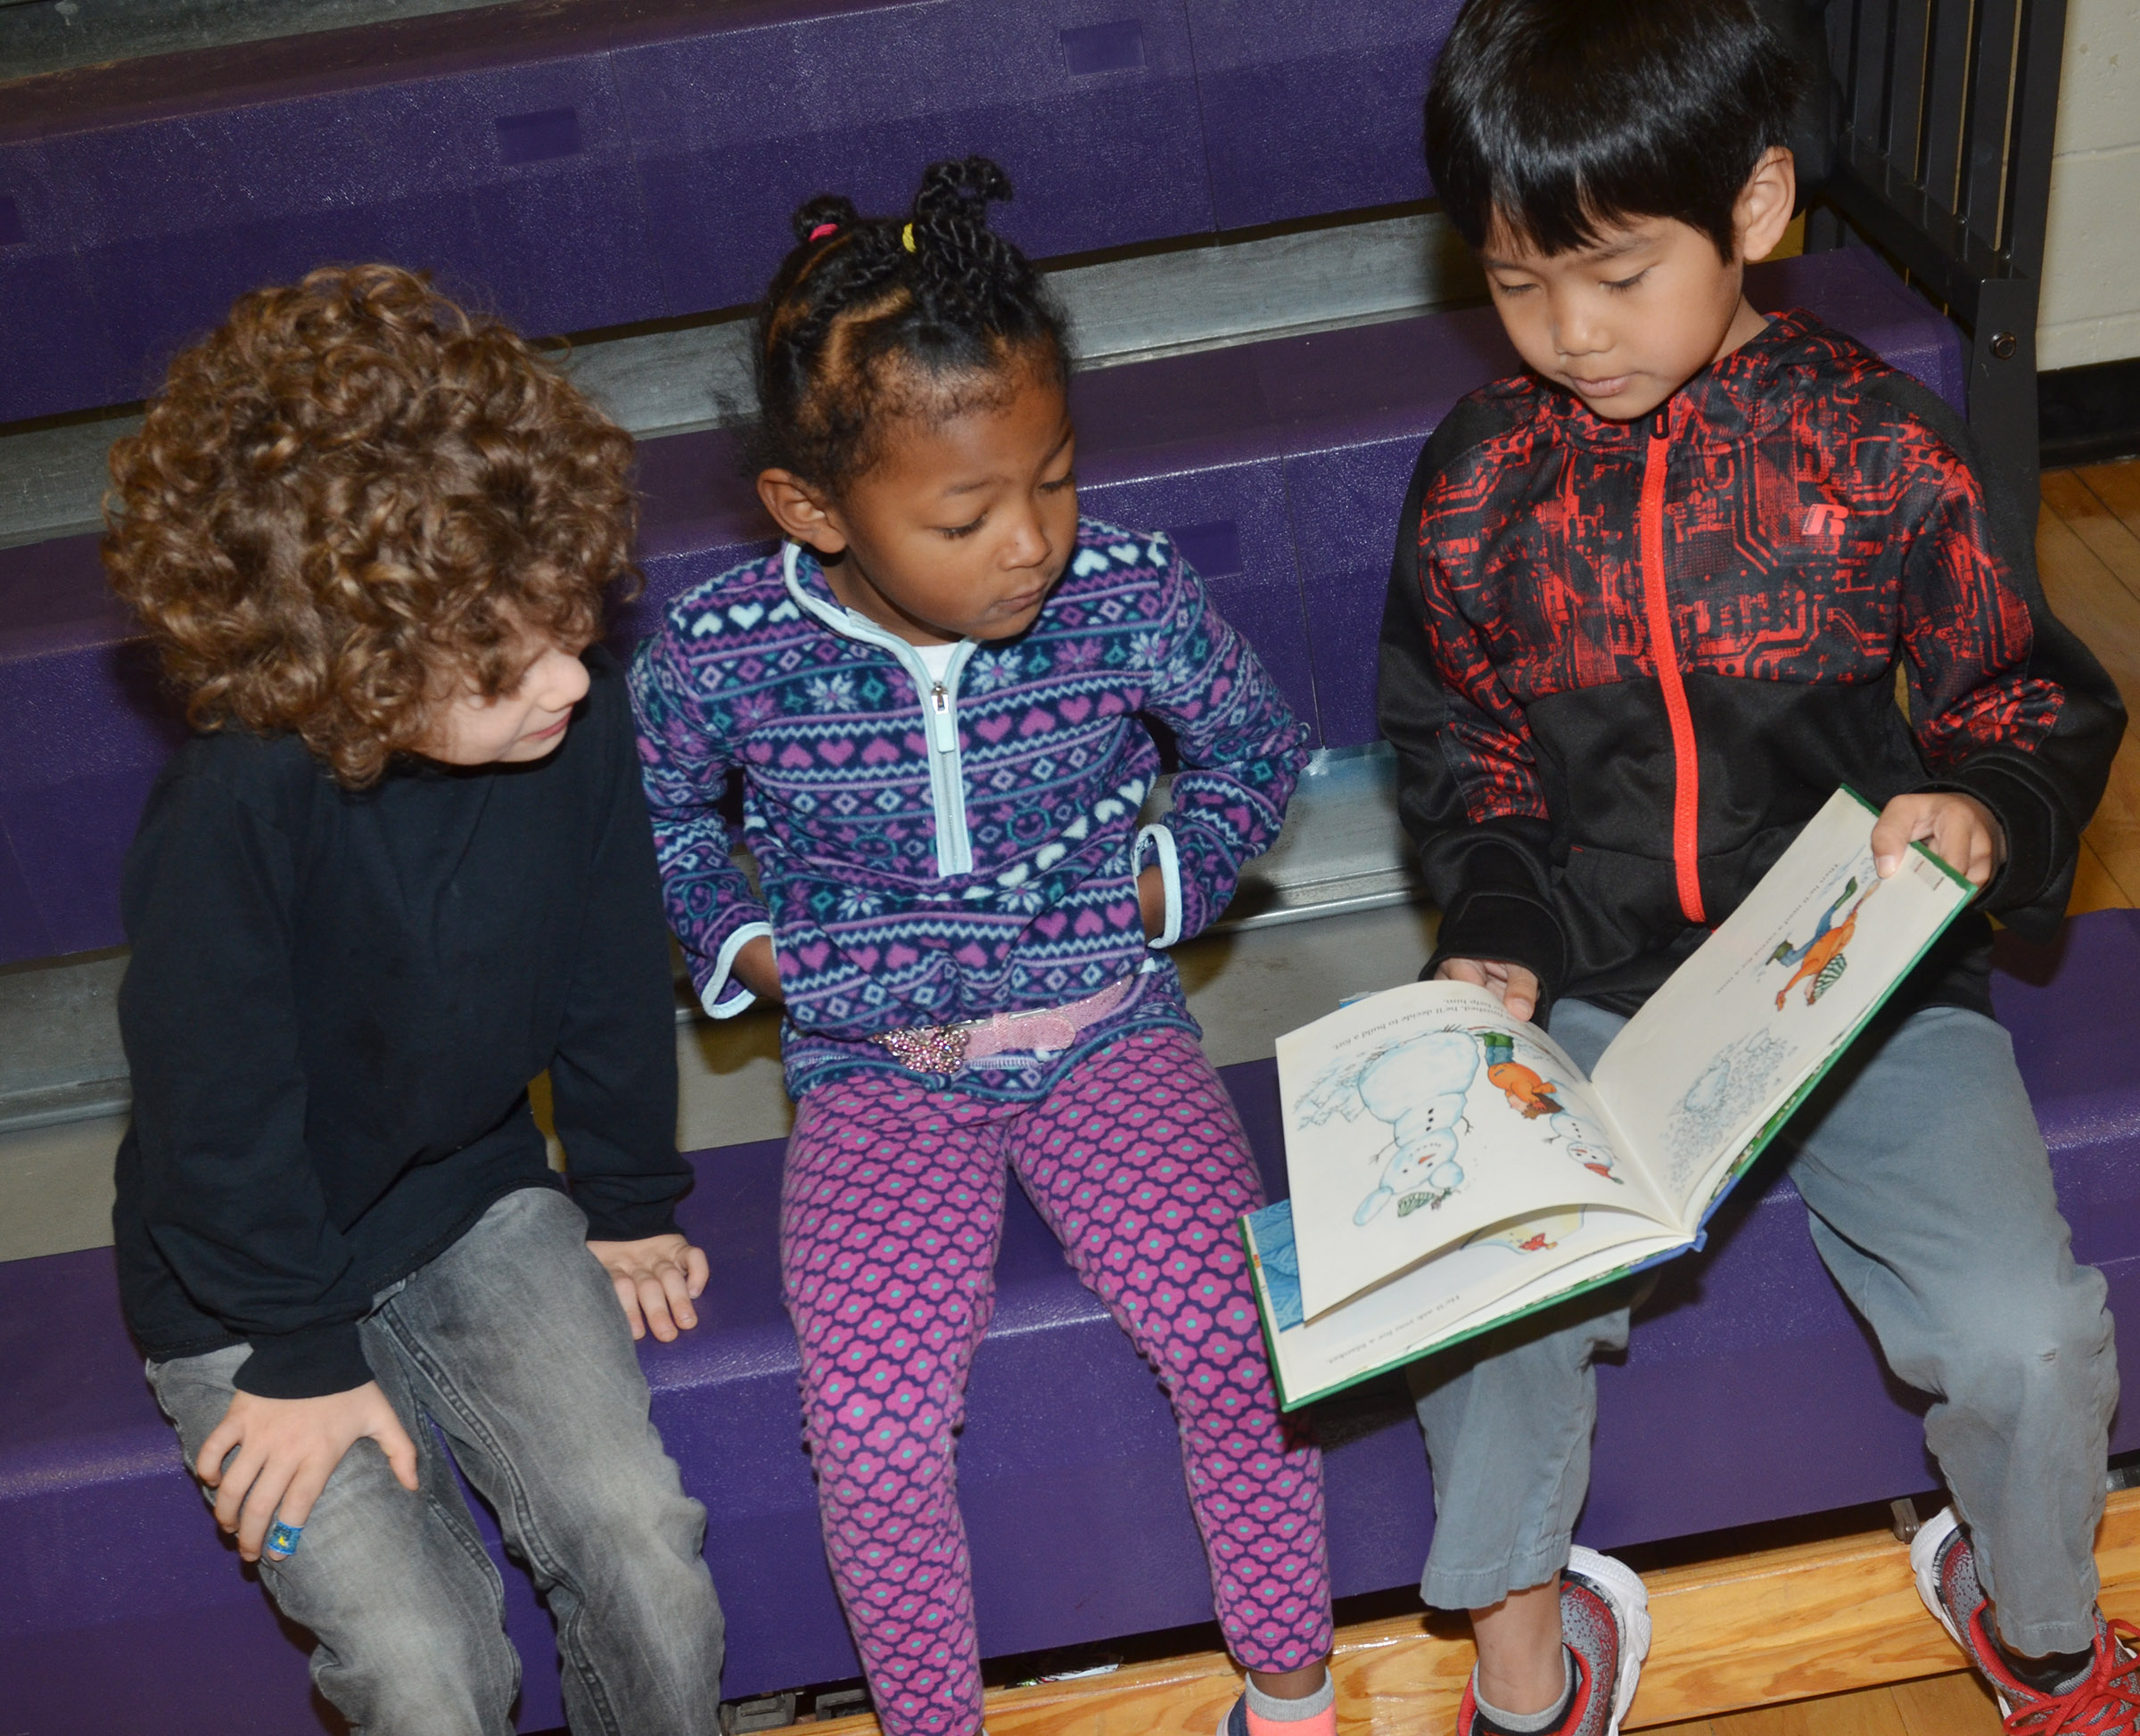 CES second-grader Zach Hak reads to preschool students Zyron Young, at left, and Modesty Taylor.